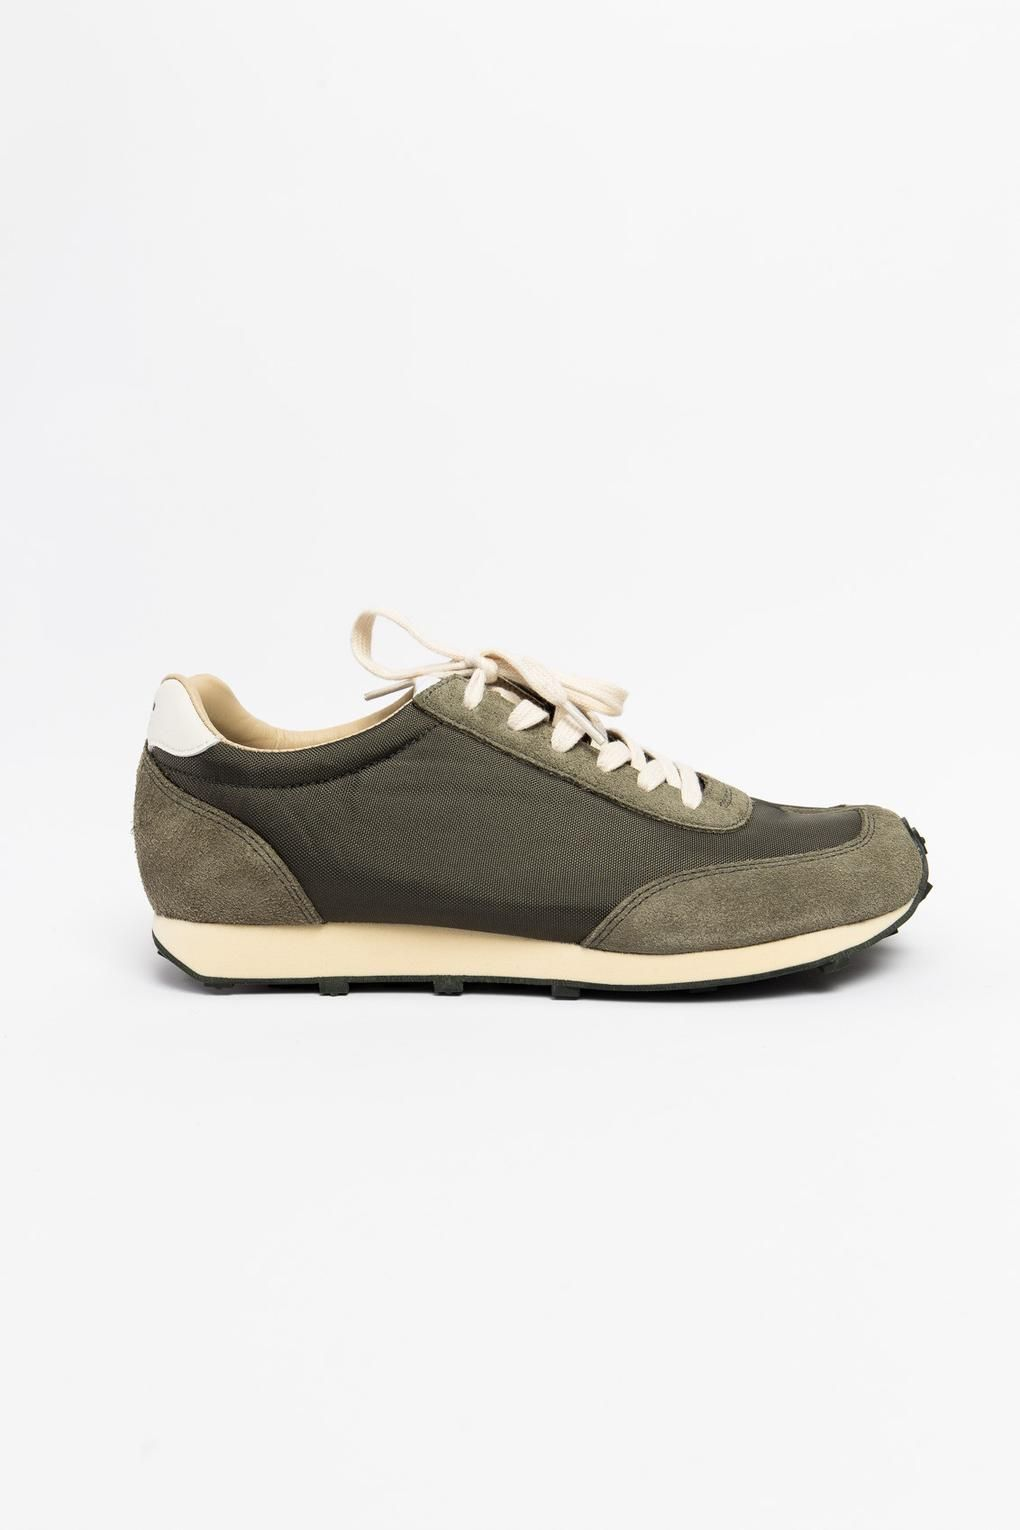 Trainers, Sneakers, Japanese traditional